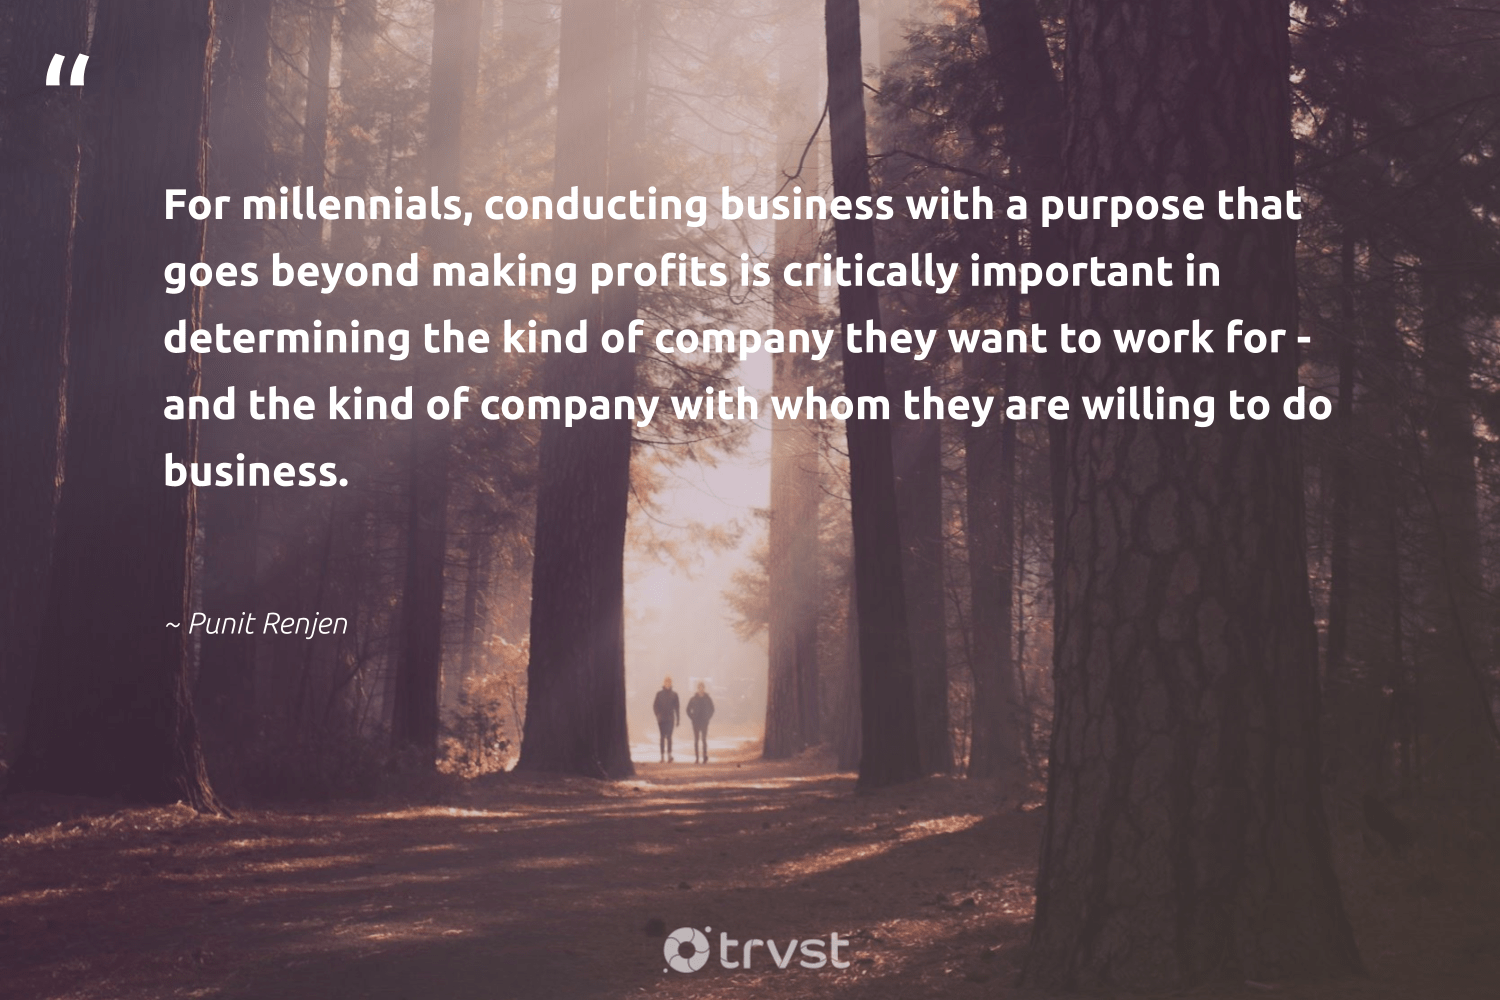 """For millennials, conducting business with a purpose that goes beyond making profits is critically important in determining the kind of company they want to work for - and the kind of company with whom they are willing to do business.""  - Punit Renjen #trvst #quotes #purpose #findpurpose #begreat #mindset #dotherightthing #purposedriven #softskills #changemakers #dosomething #findingpupose"